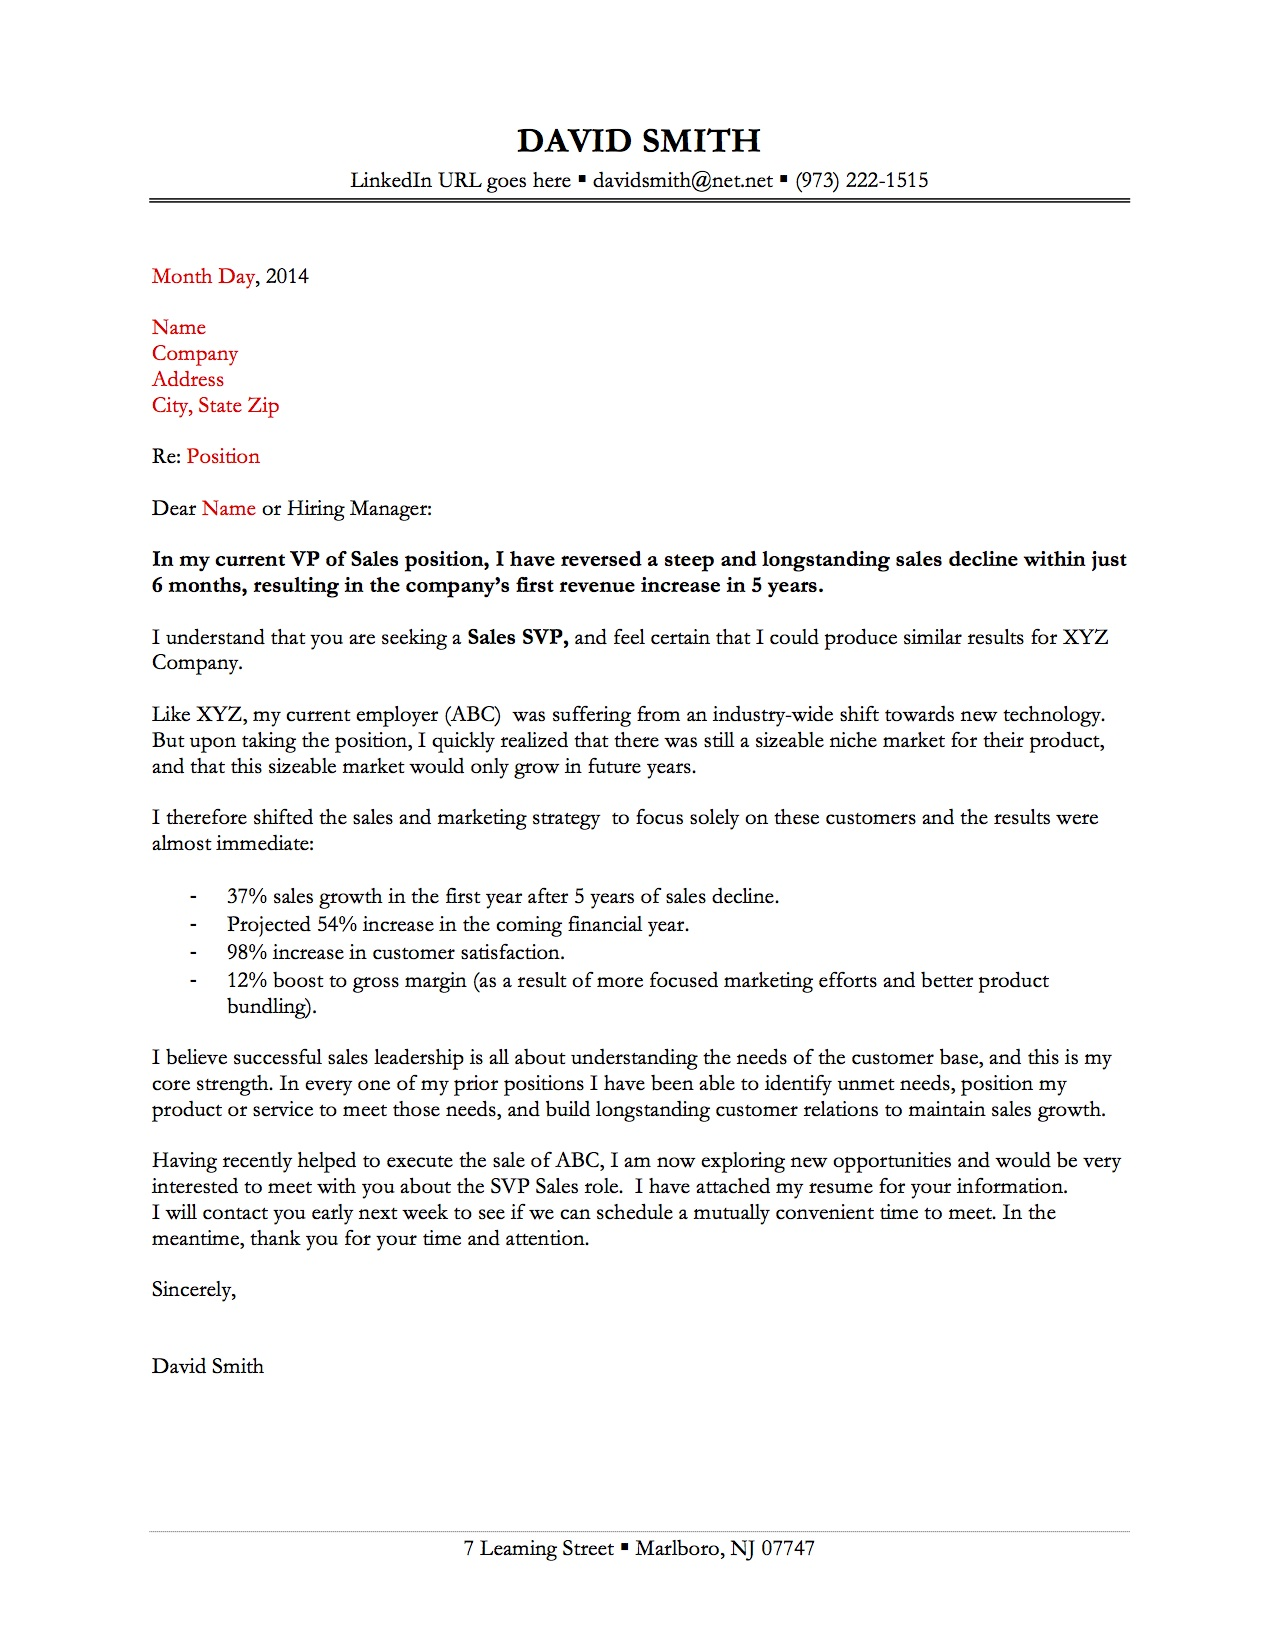 great cover letter samples inspirational how to write - How To Write Great Cover Letters